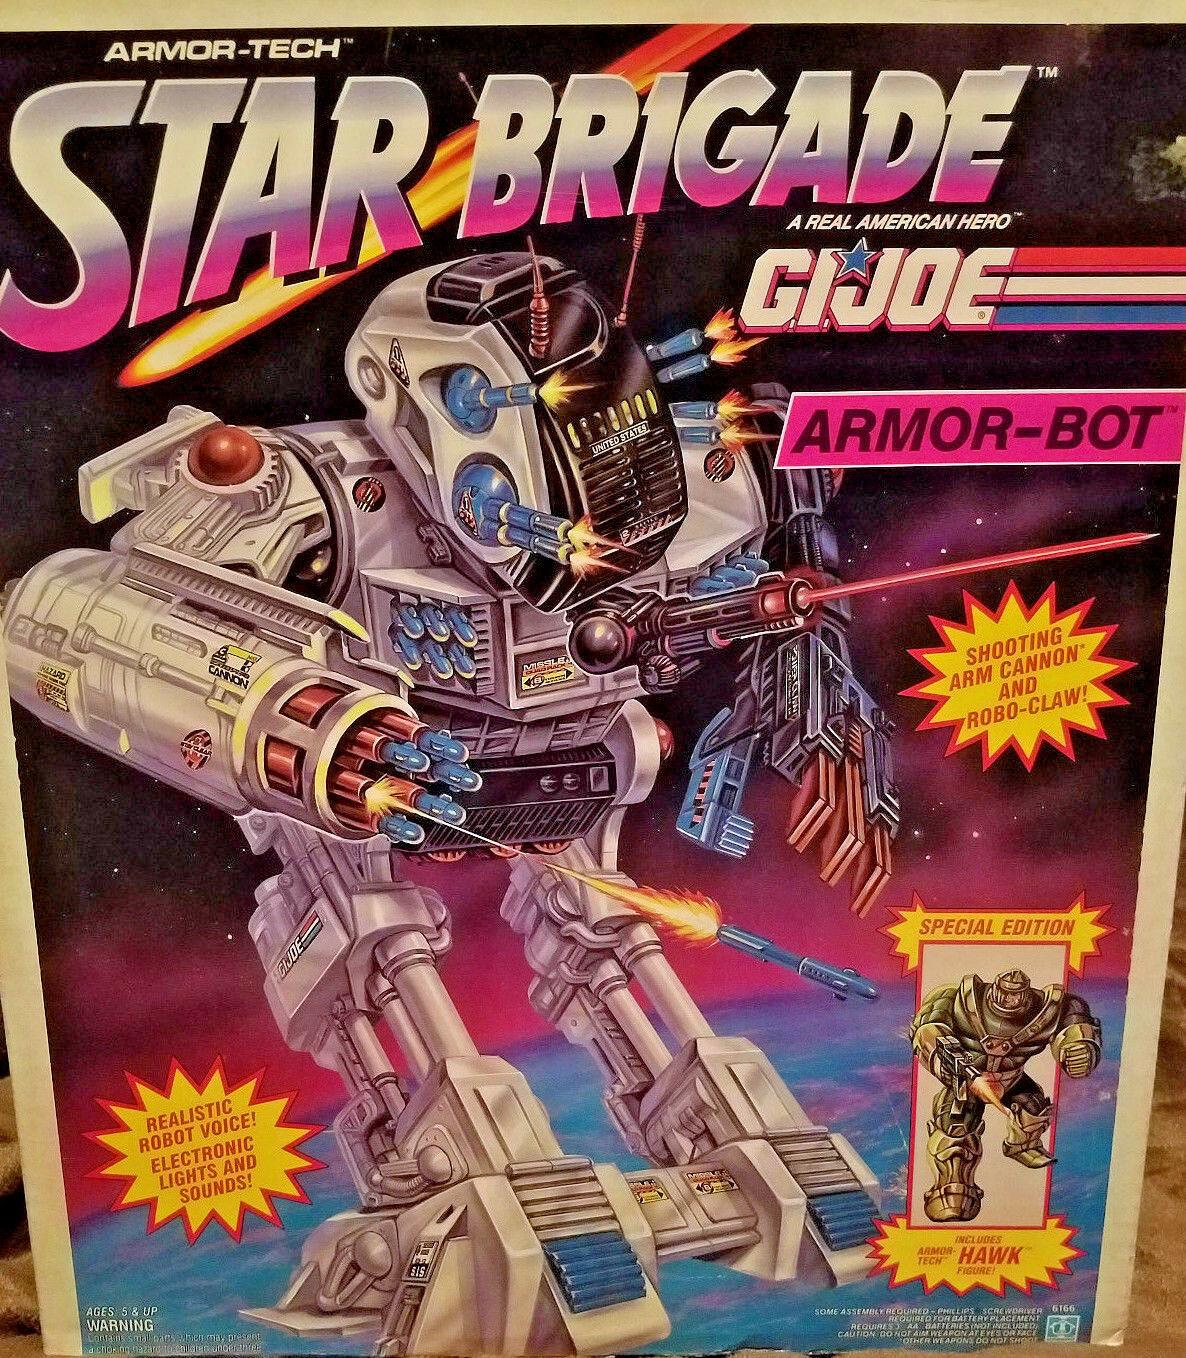 GI Joe Star Brigade ARMOR-BOT & Armor-Tech Hawk Figure 1993 Factory Sealed MISB